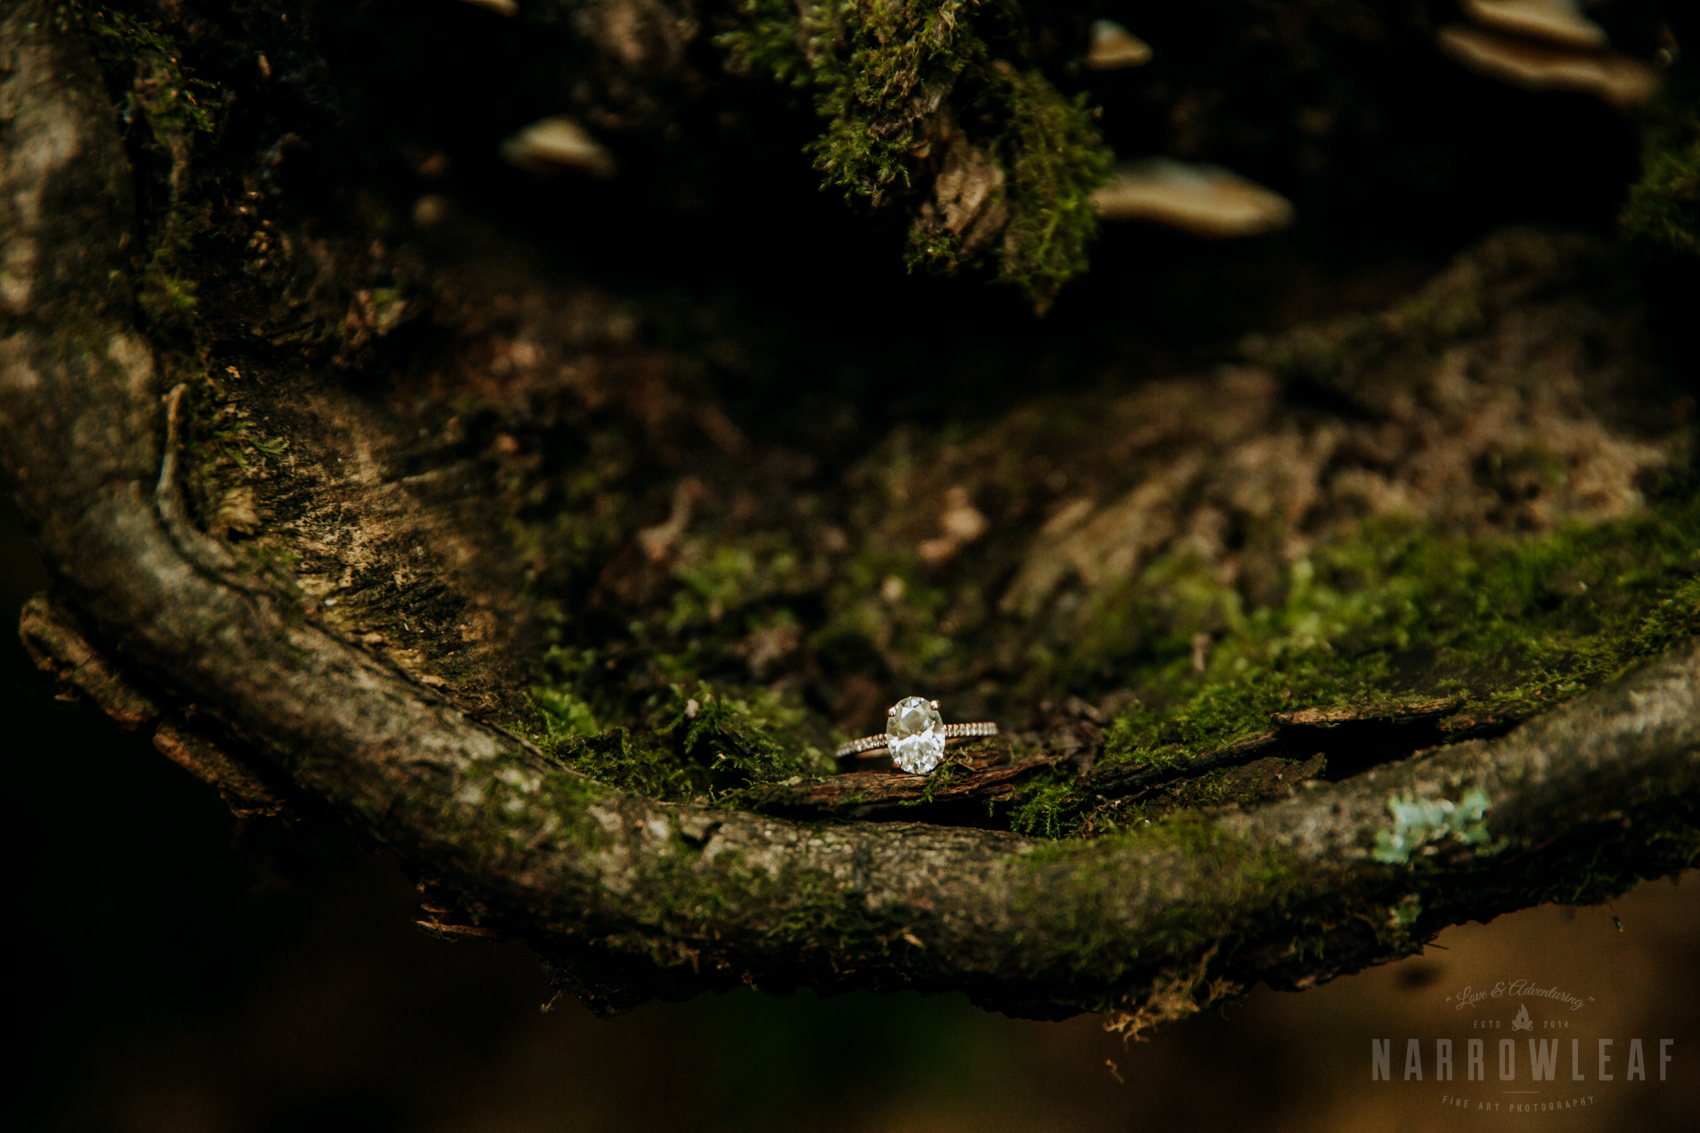 Perrot-state-park-woodsy-engagement-NarrowLeaf-love-and-adventure-Photography-38.jpg